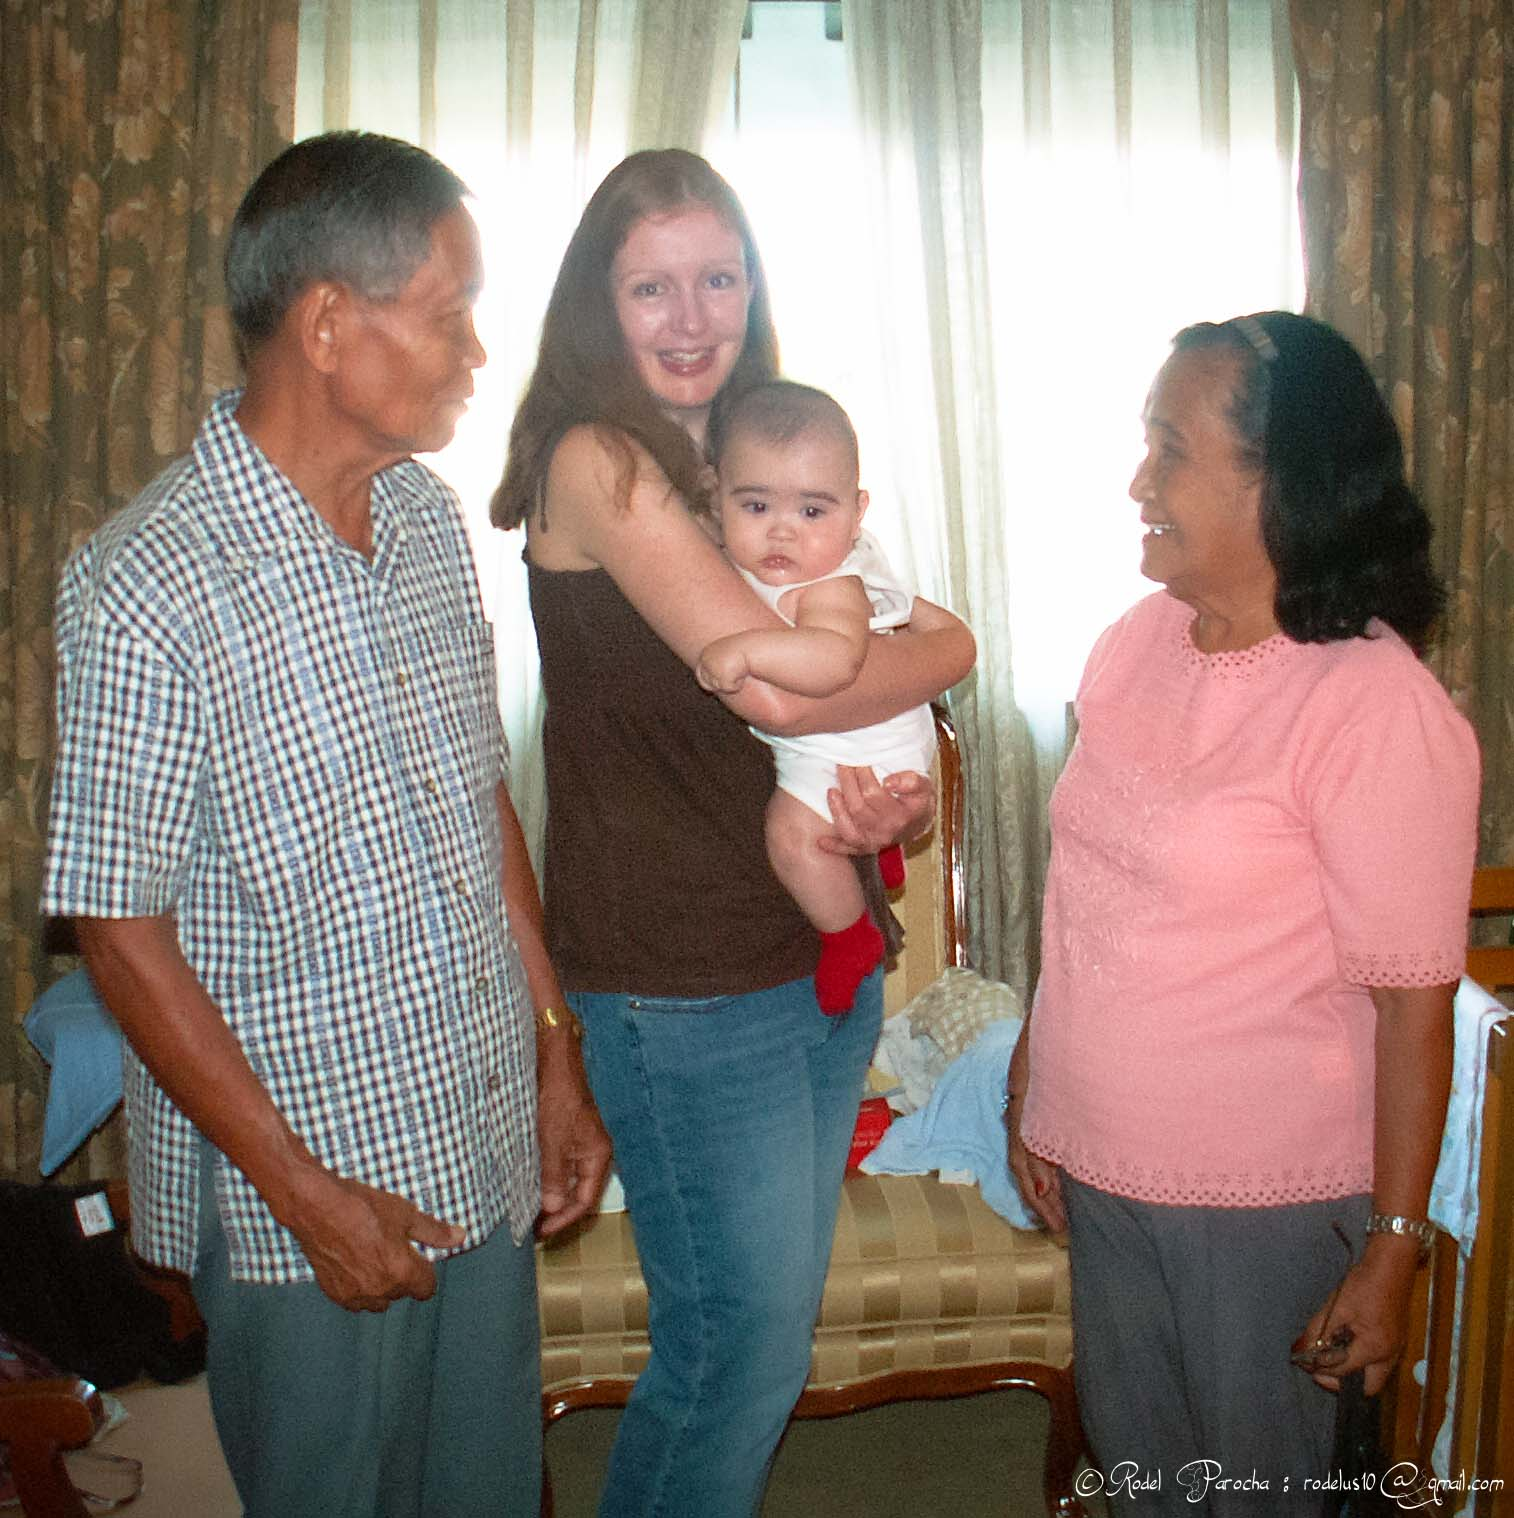 Patrick's first meeting with his Lolo (Grandpa) and his Lola (Grandma)... He was a gigantic 5month old baby. In this photo, Mum and Dad were deciding who should take Patrick from his Mum's arms first - of course it was Lola.Photo was taken in the summer of April 2006 at Intercontinental Hotel Makati City, Philippines.